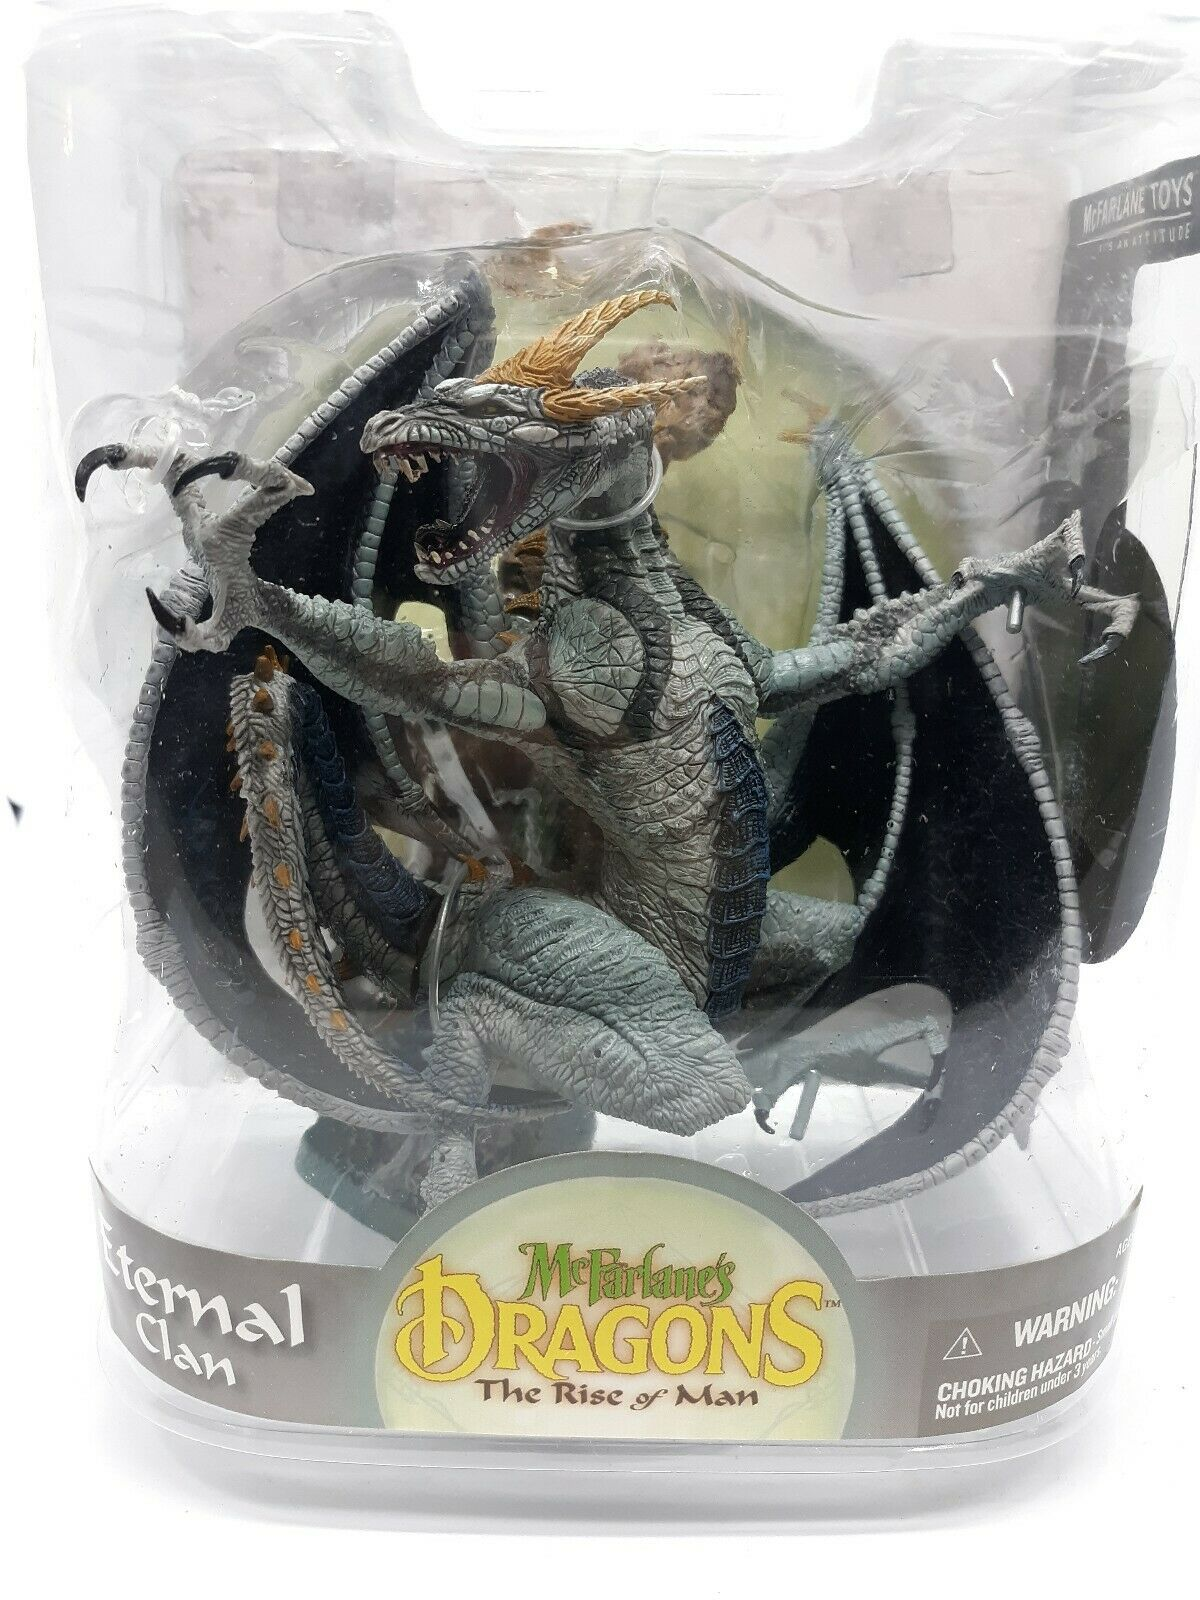 McFARLANE'S  DRAGONS S8 THE RISE OF uomo ETERNAL CLAN DRAGON cifra nuovo A26  l'intera rete più bassa